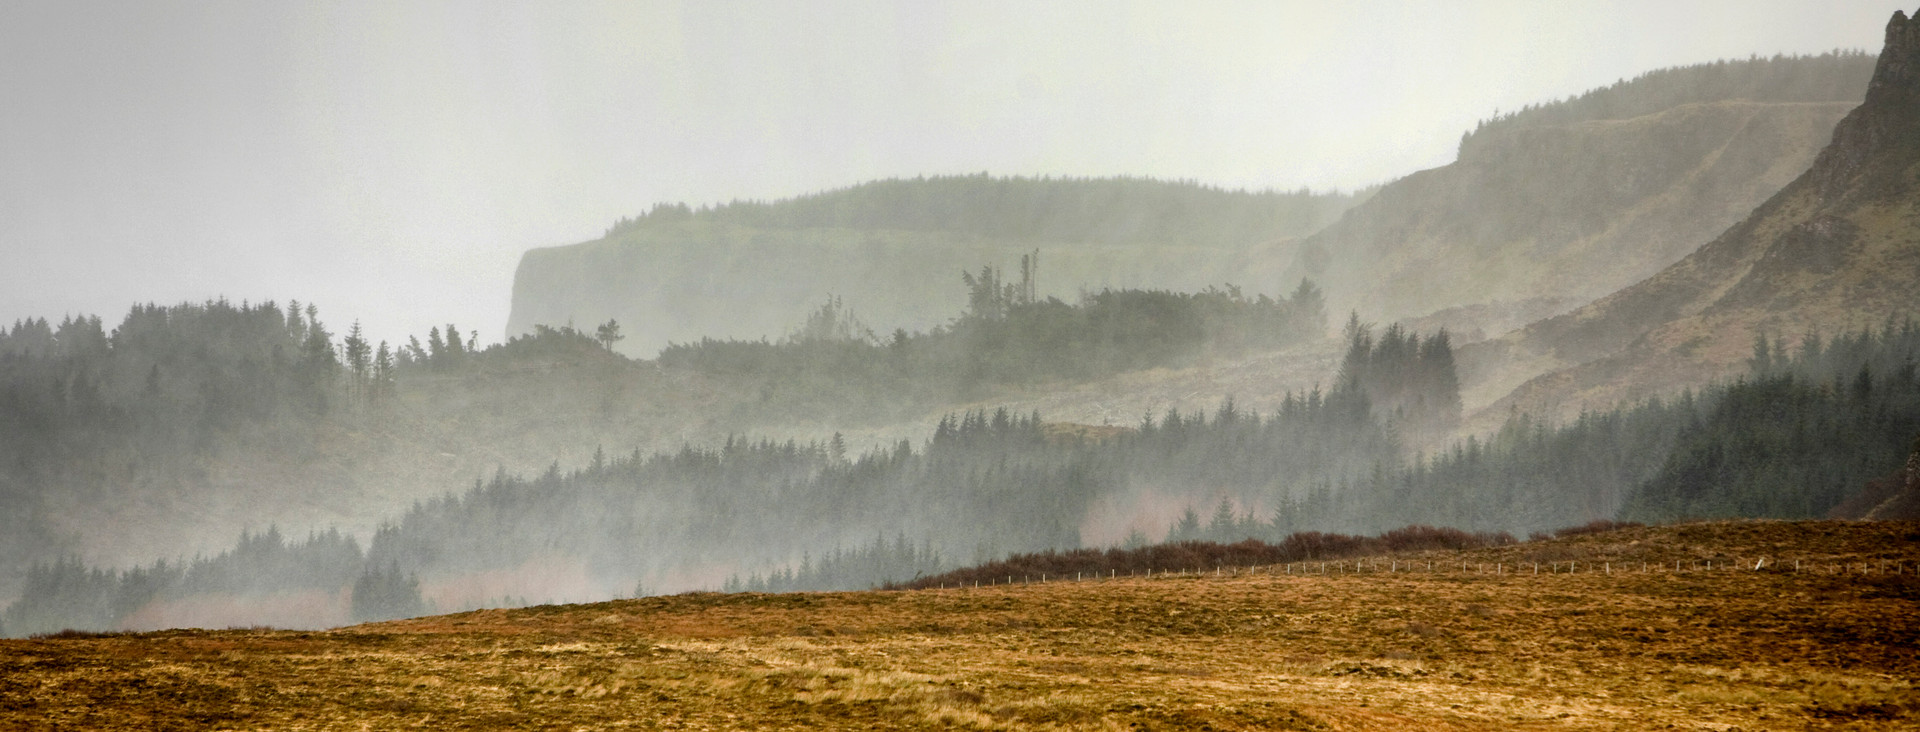 Mist in the cliffs of Beinn an Sguirr